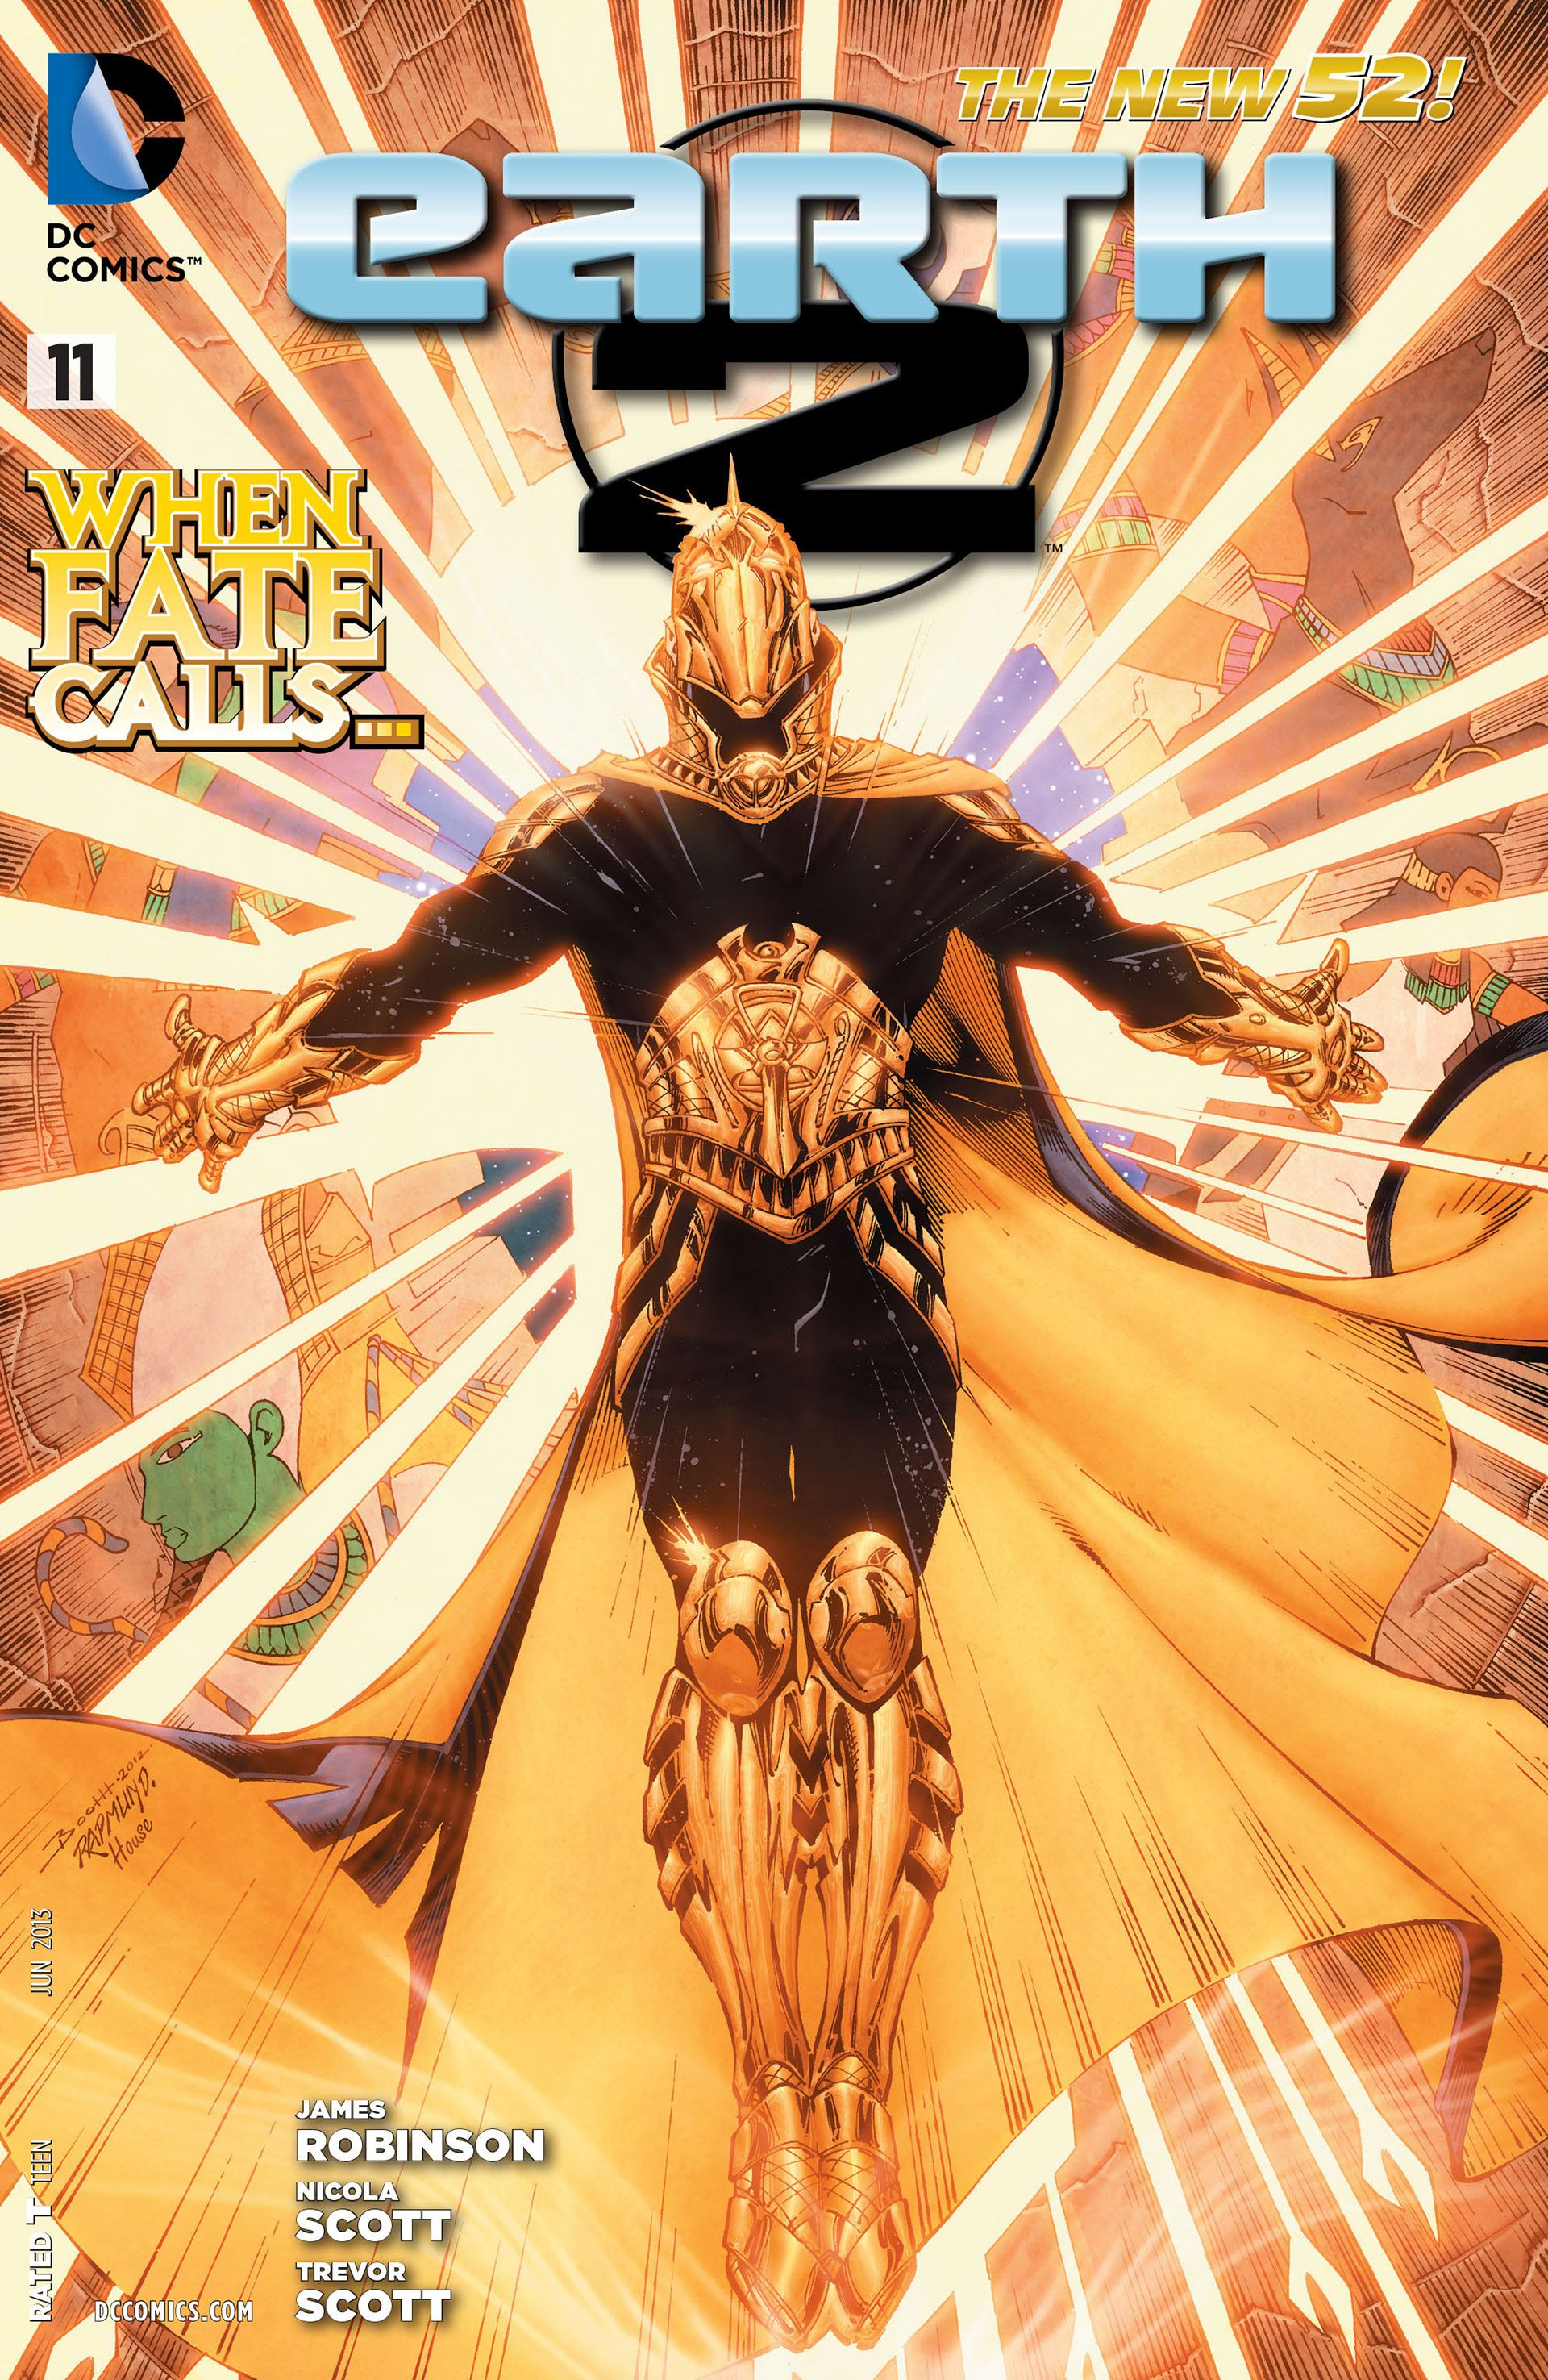 Earth 2 #11 - The Tower of Fate, Part Two: The Man Who Was Brave (Issue)